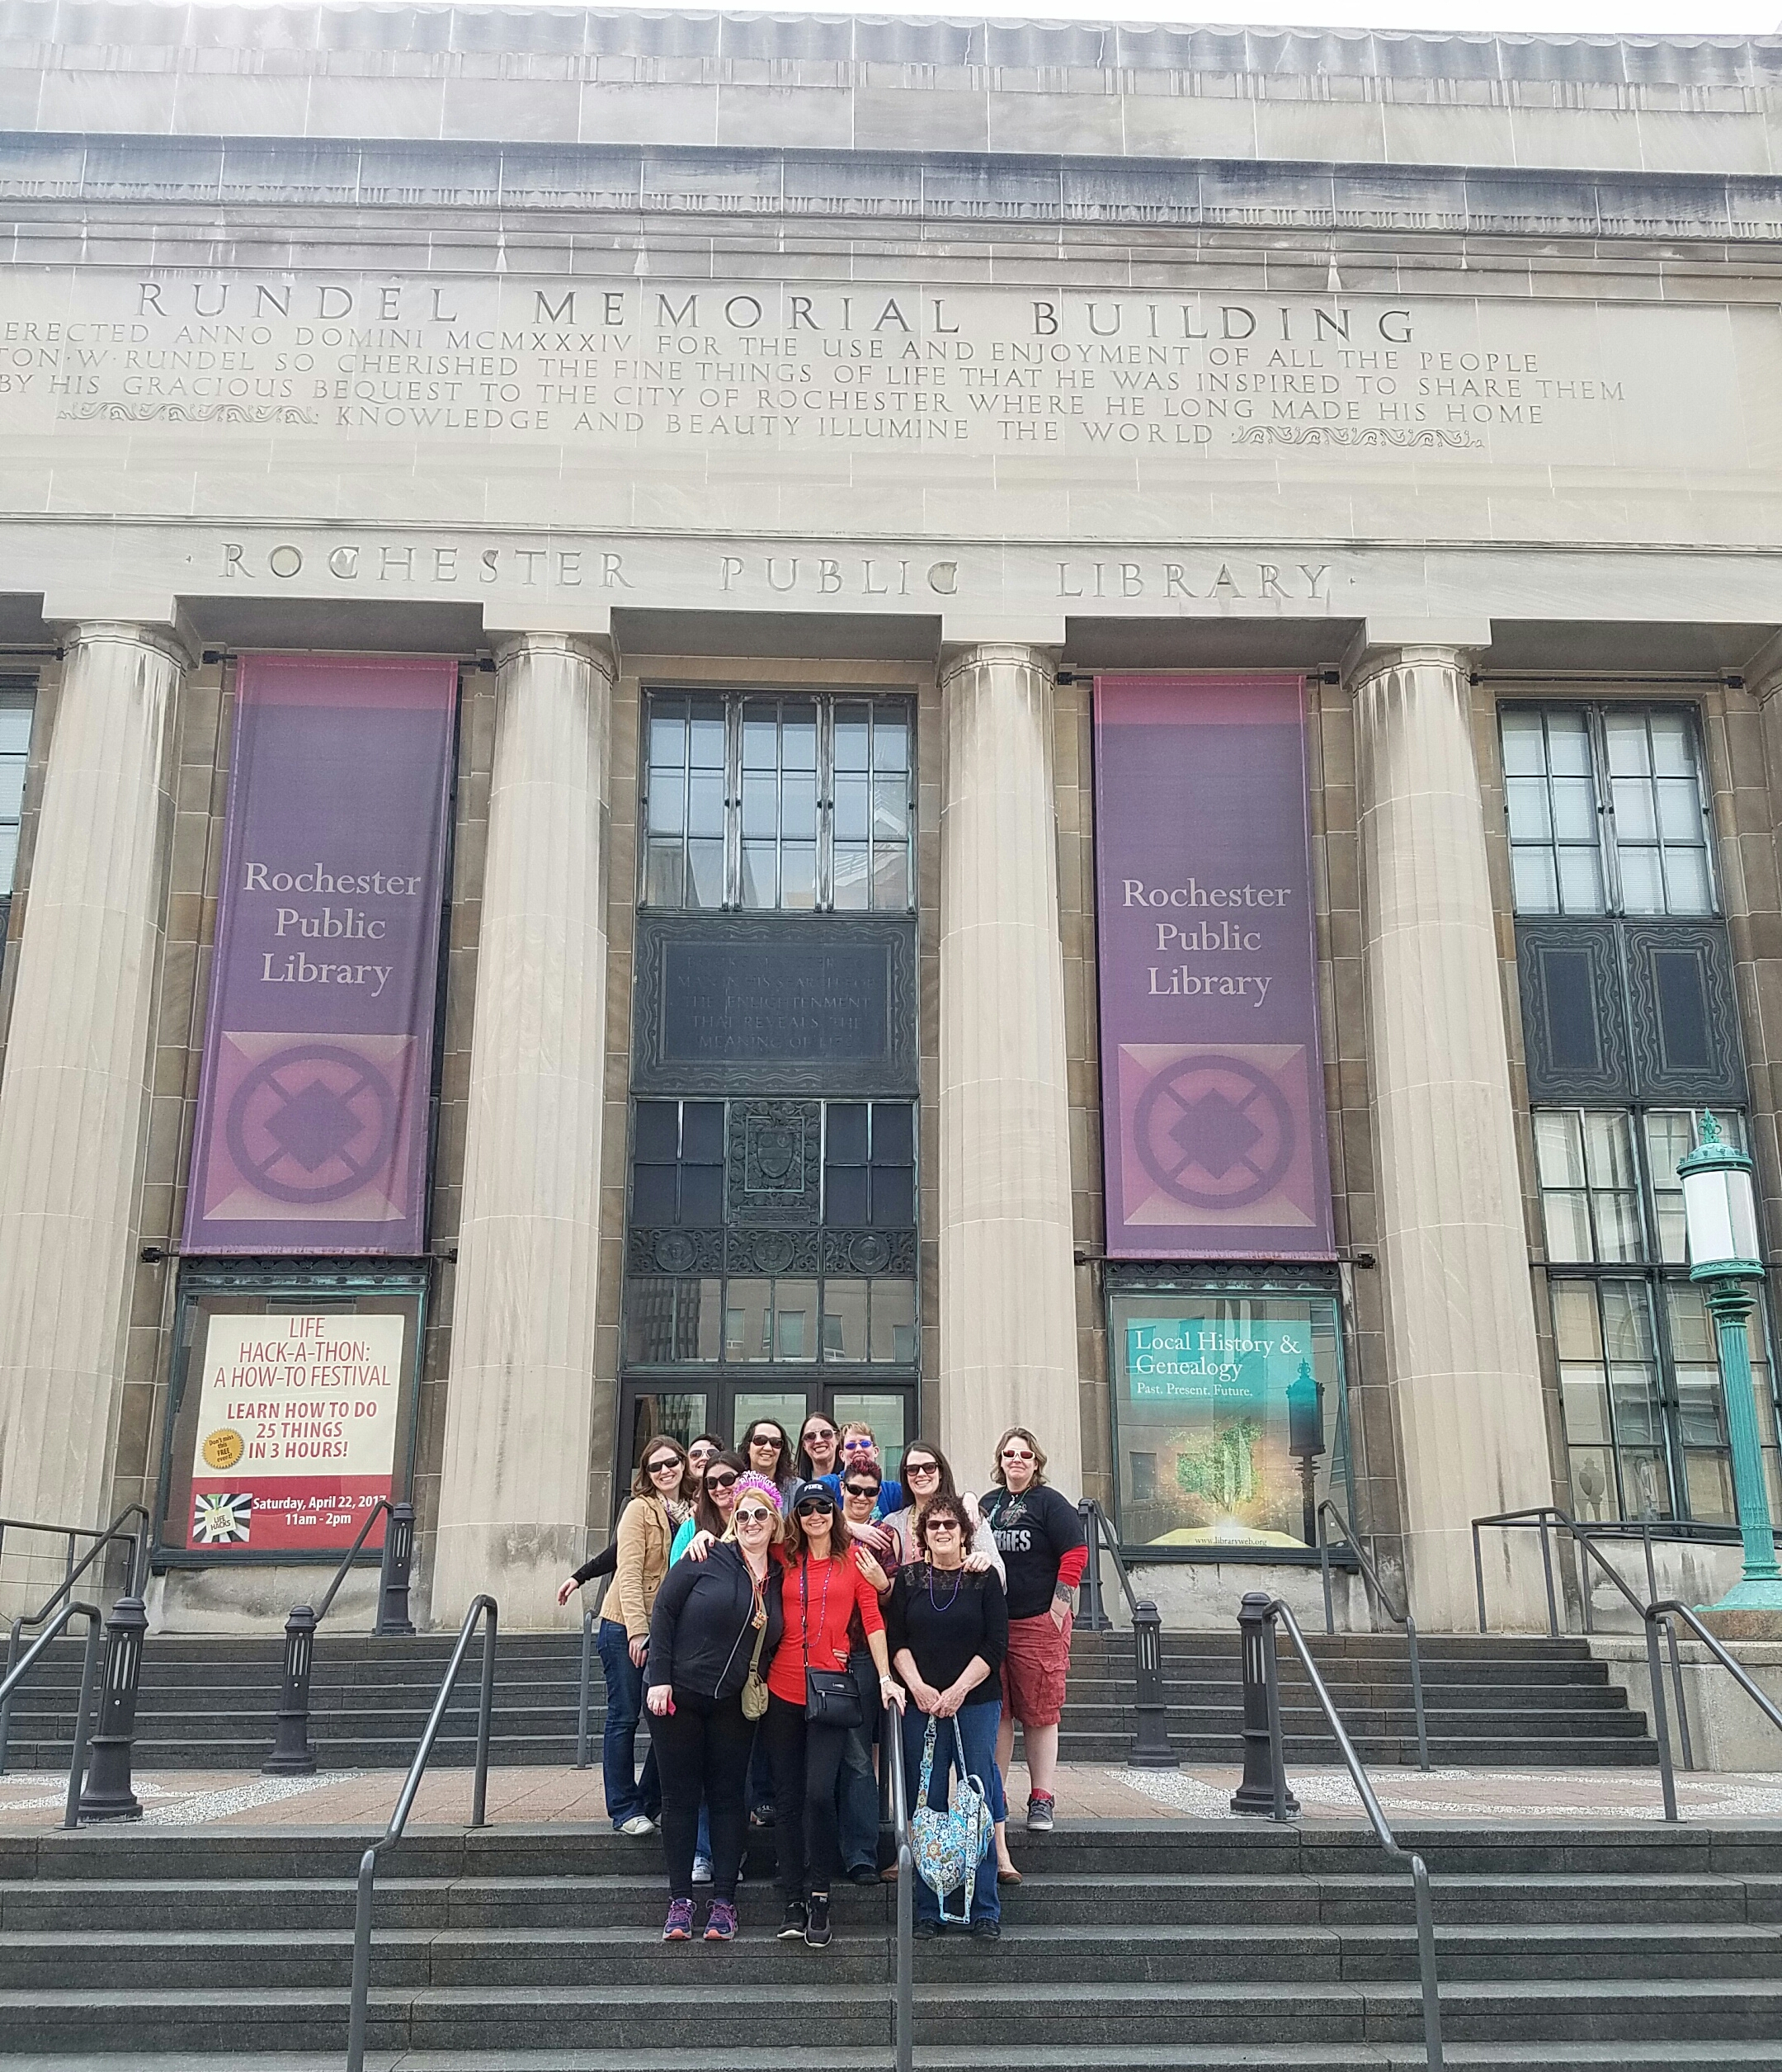 A Team Building History Tour in Front of Rundell Library Rochester